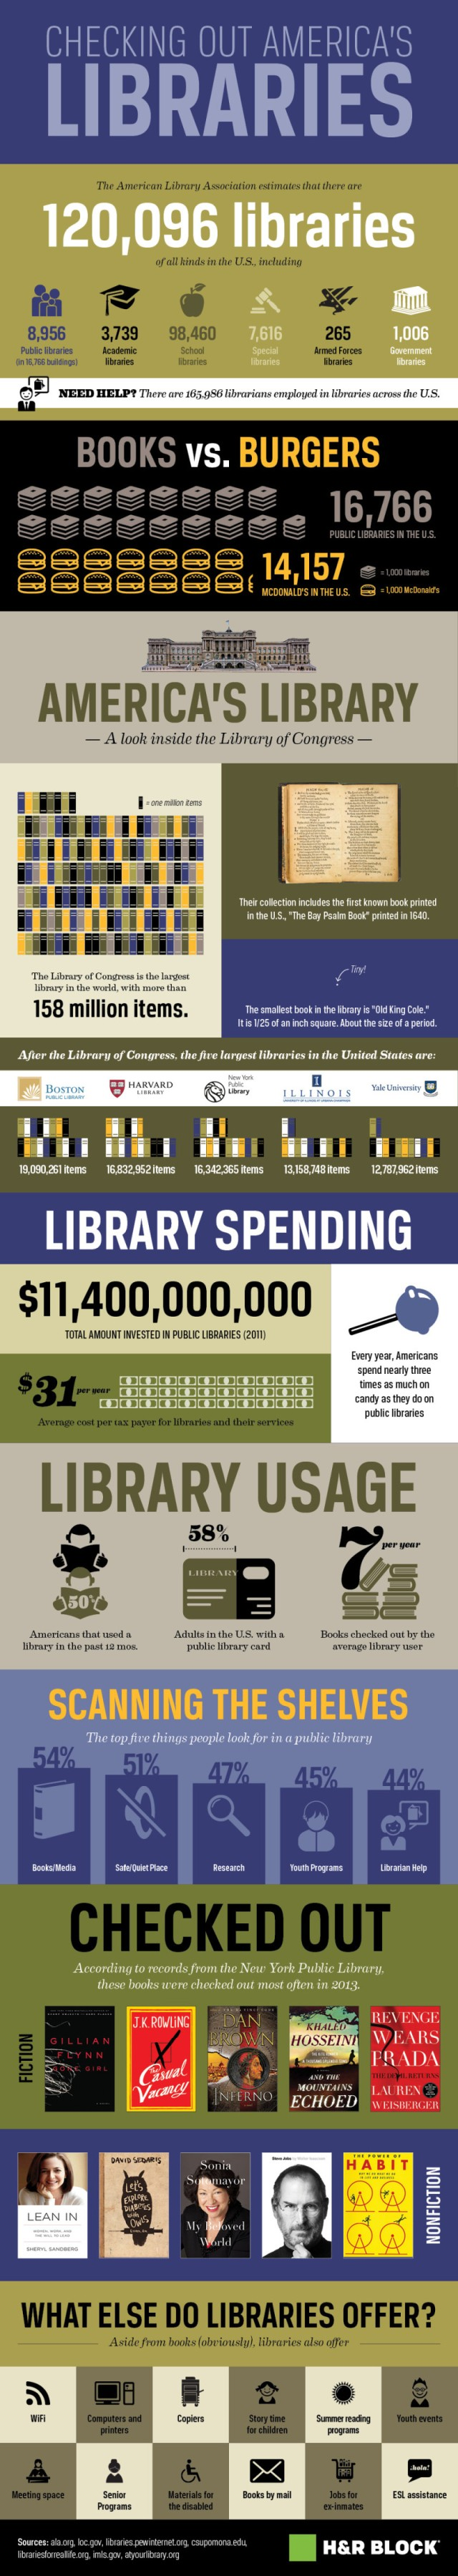 American-libraries-by-the-numbers-infographic-840x4725